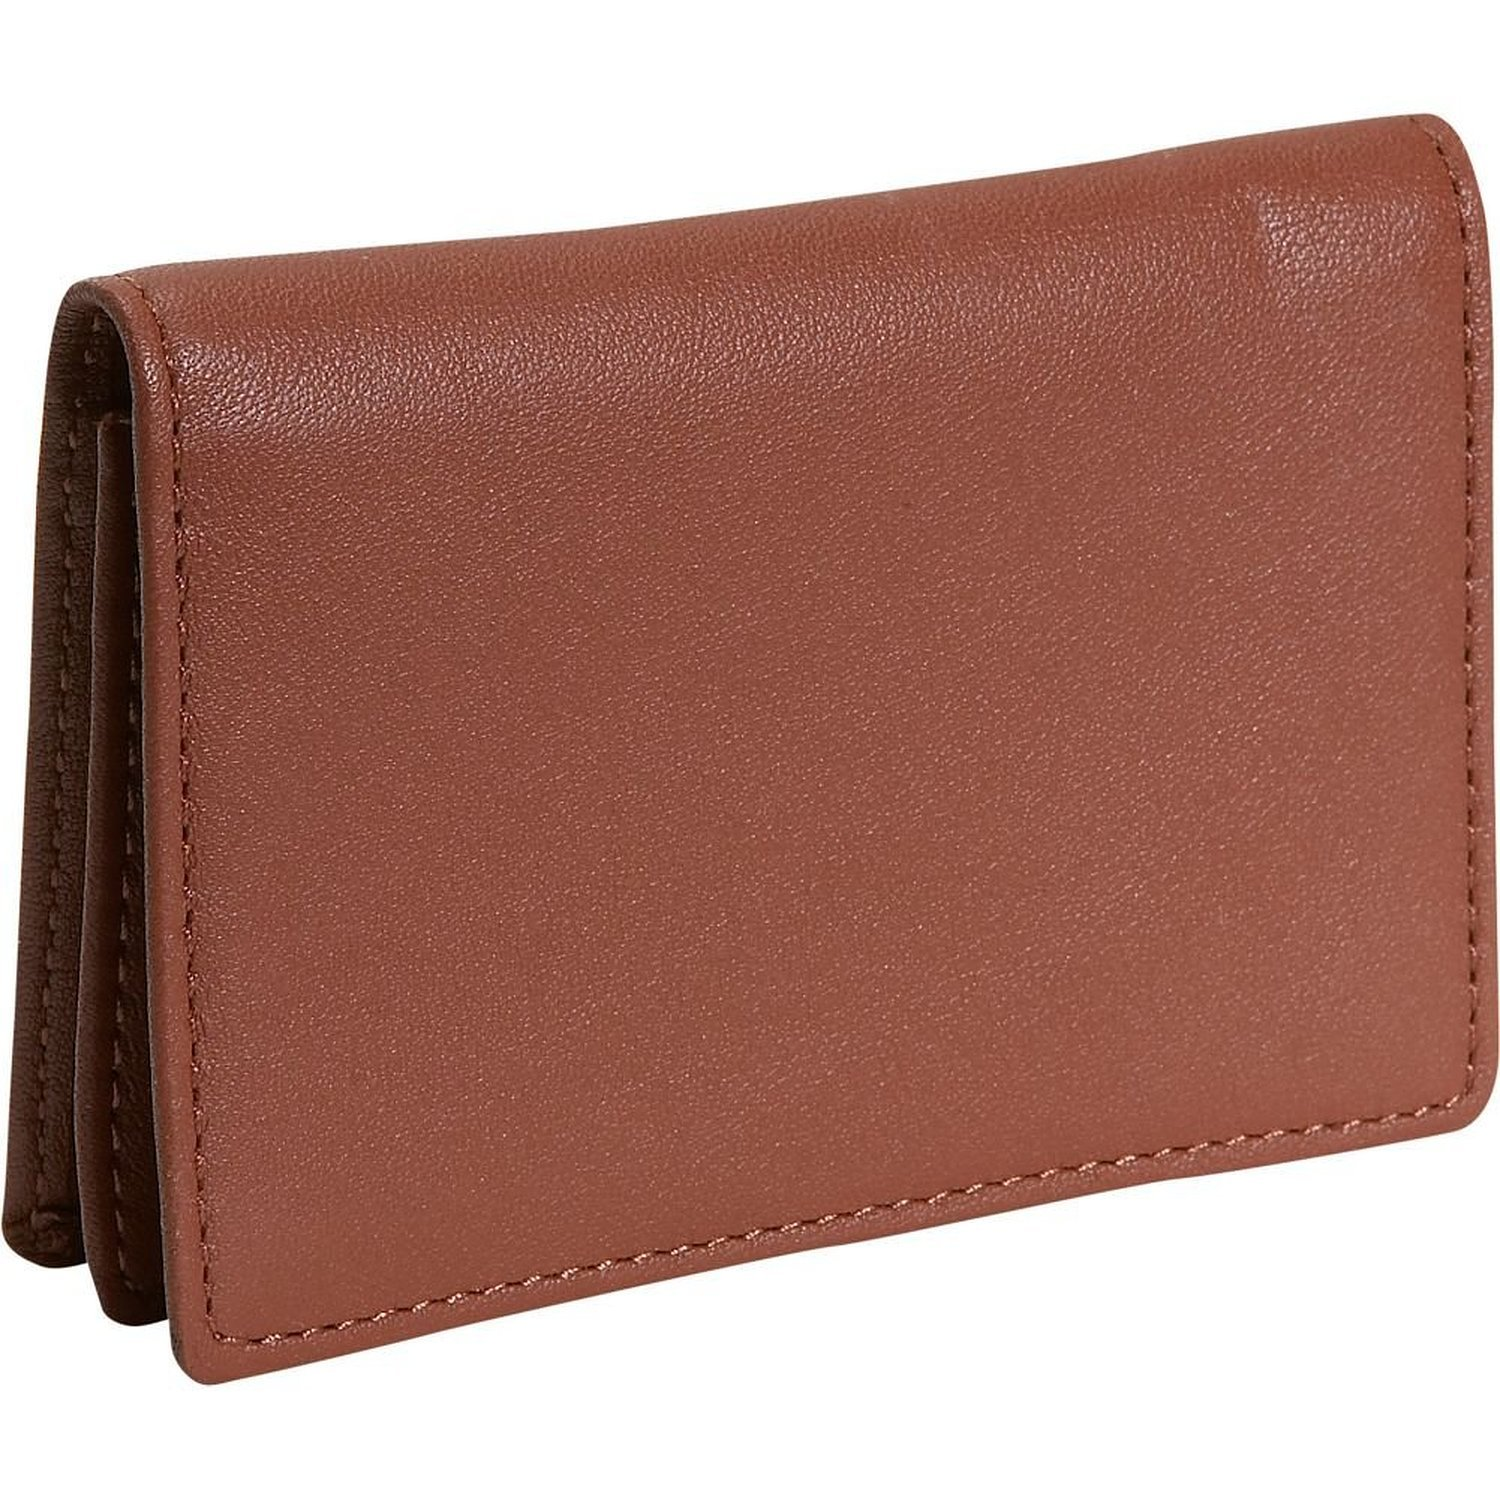 Royce Business Card Holder - Leather - Tan